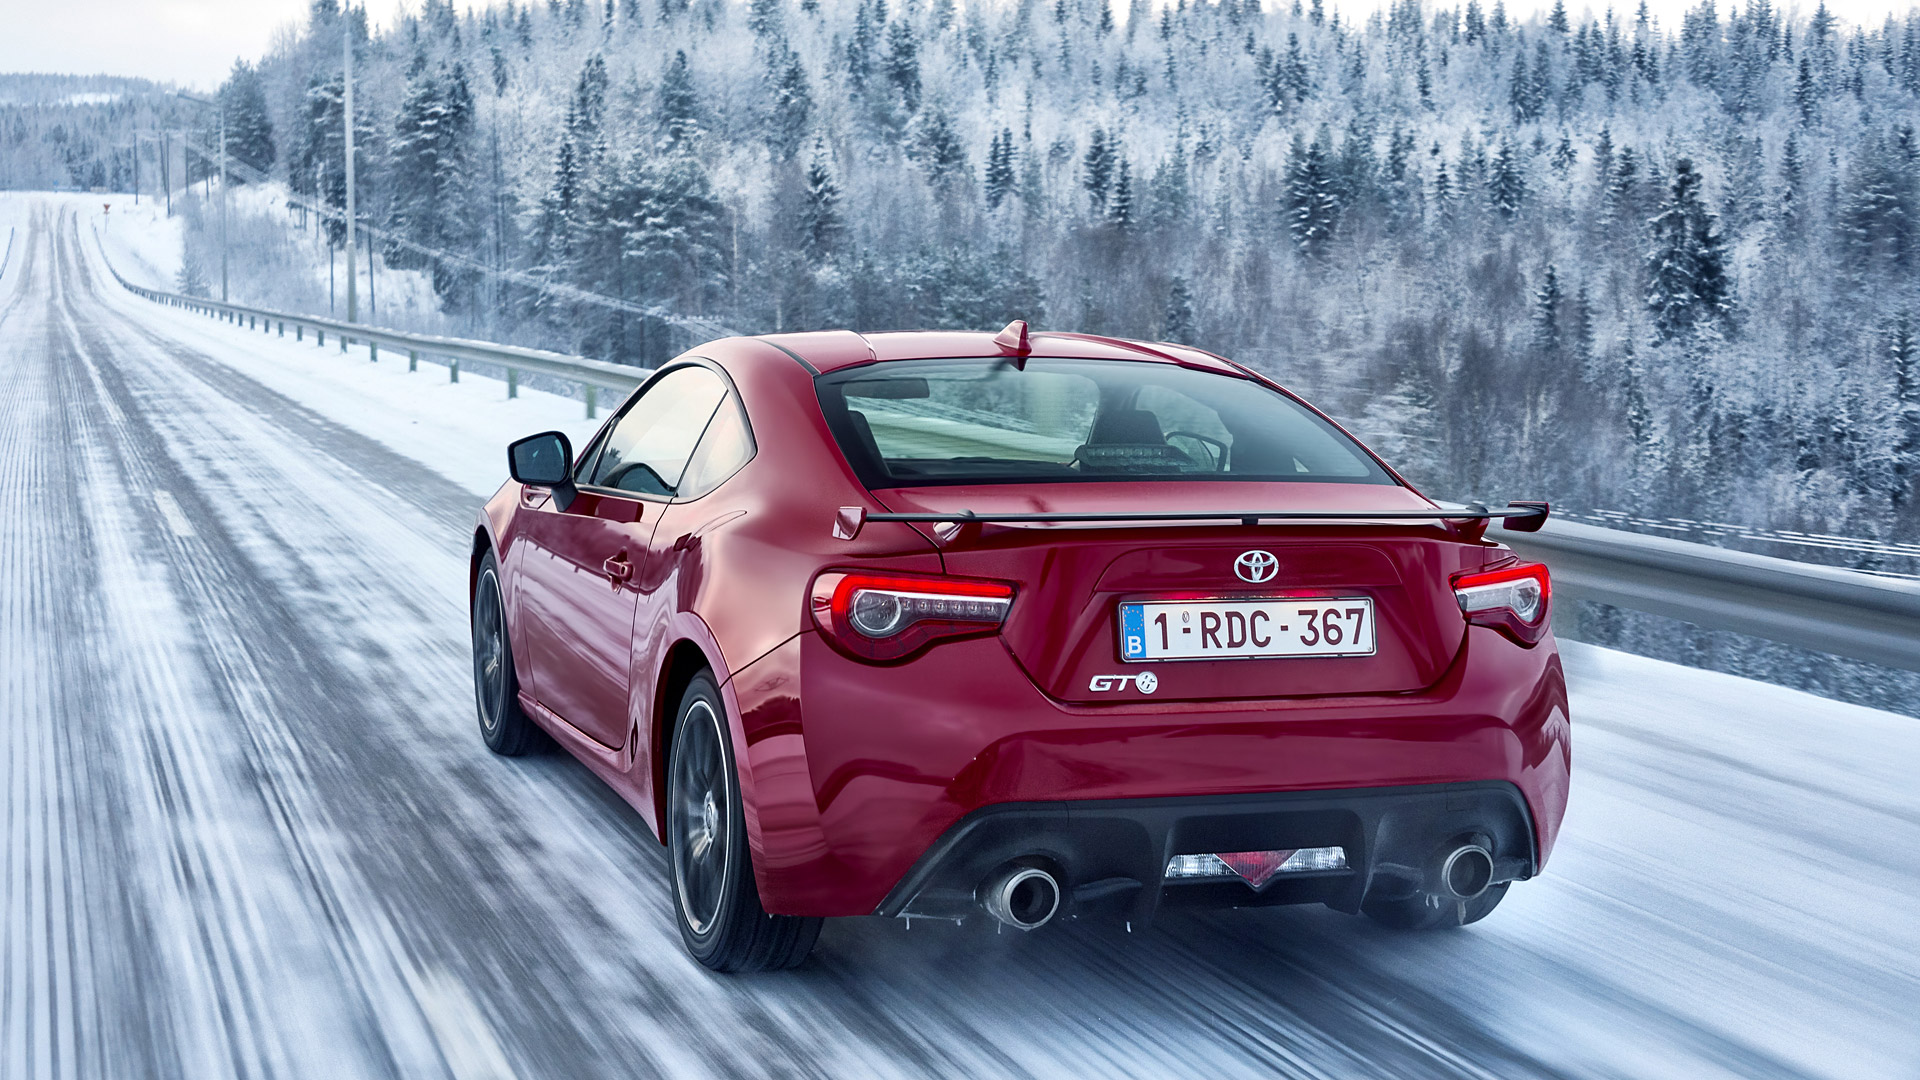 2017 Toyota Gt 86 Picture - Toyota Gt 86 , HD Wallpaper & Backgrounds